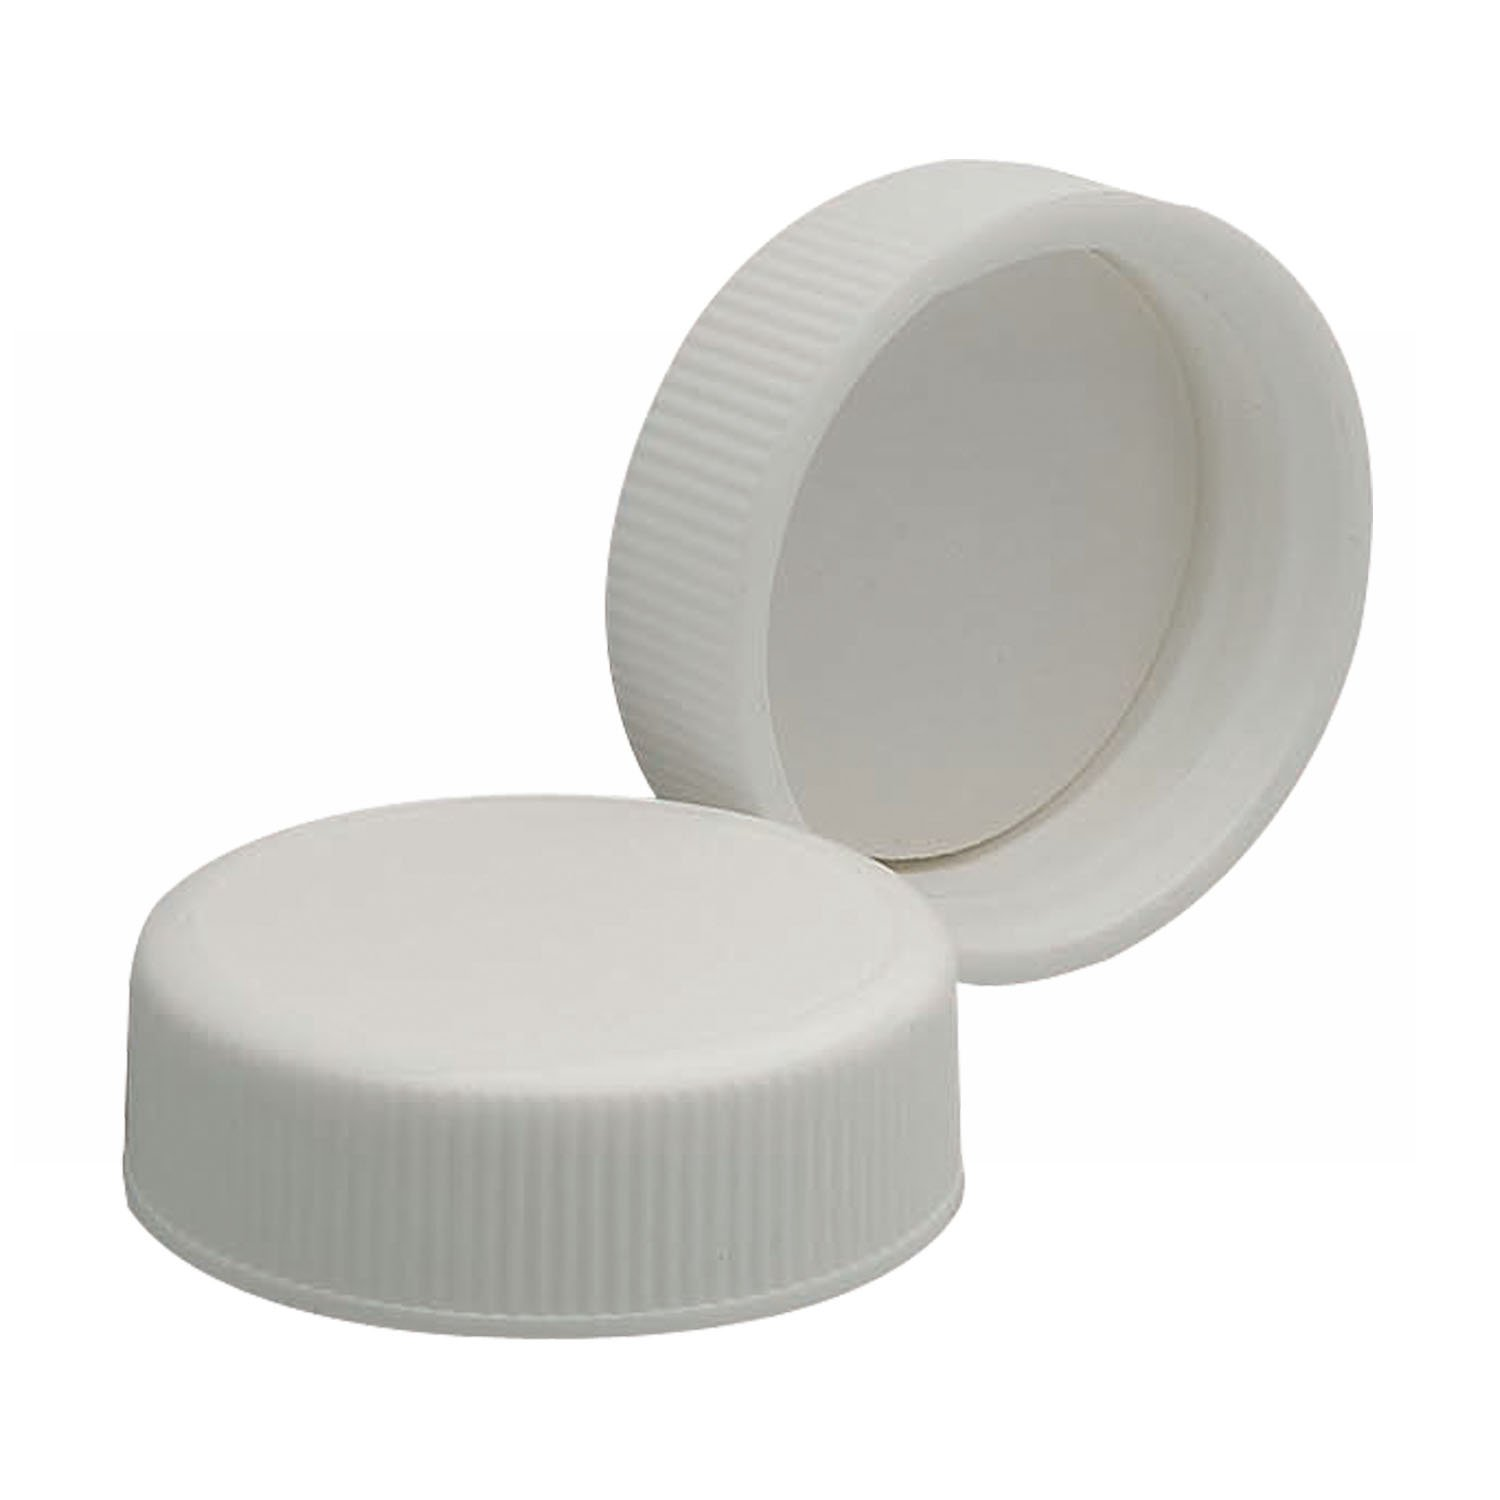 Wheaton Deluxe 239284 White Polypropylene Screw with Foamed Outlet SALE Polyeth Cap